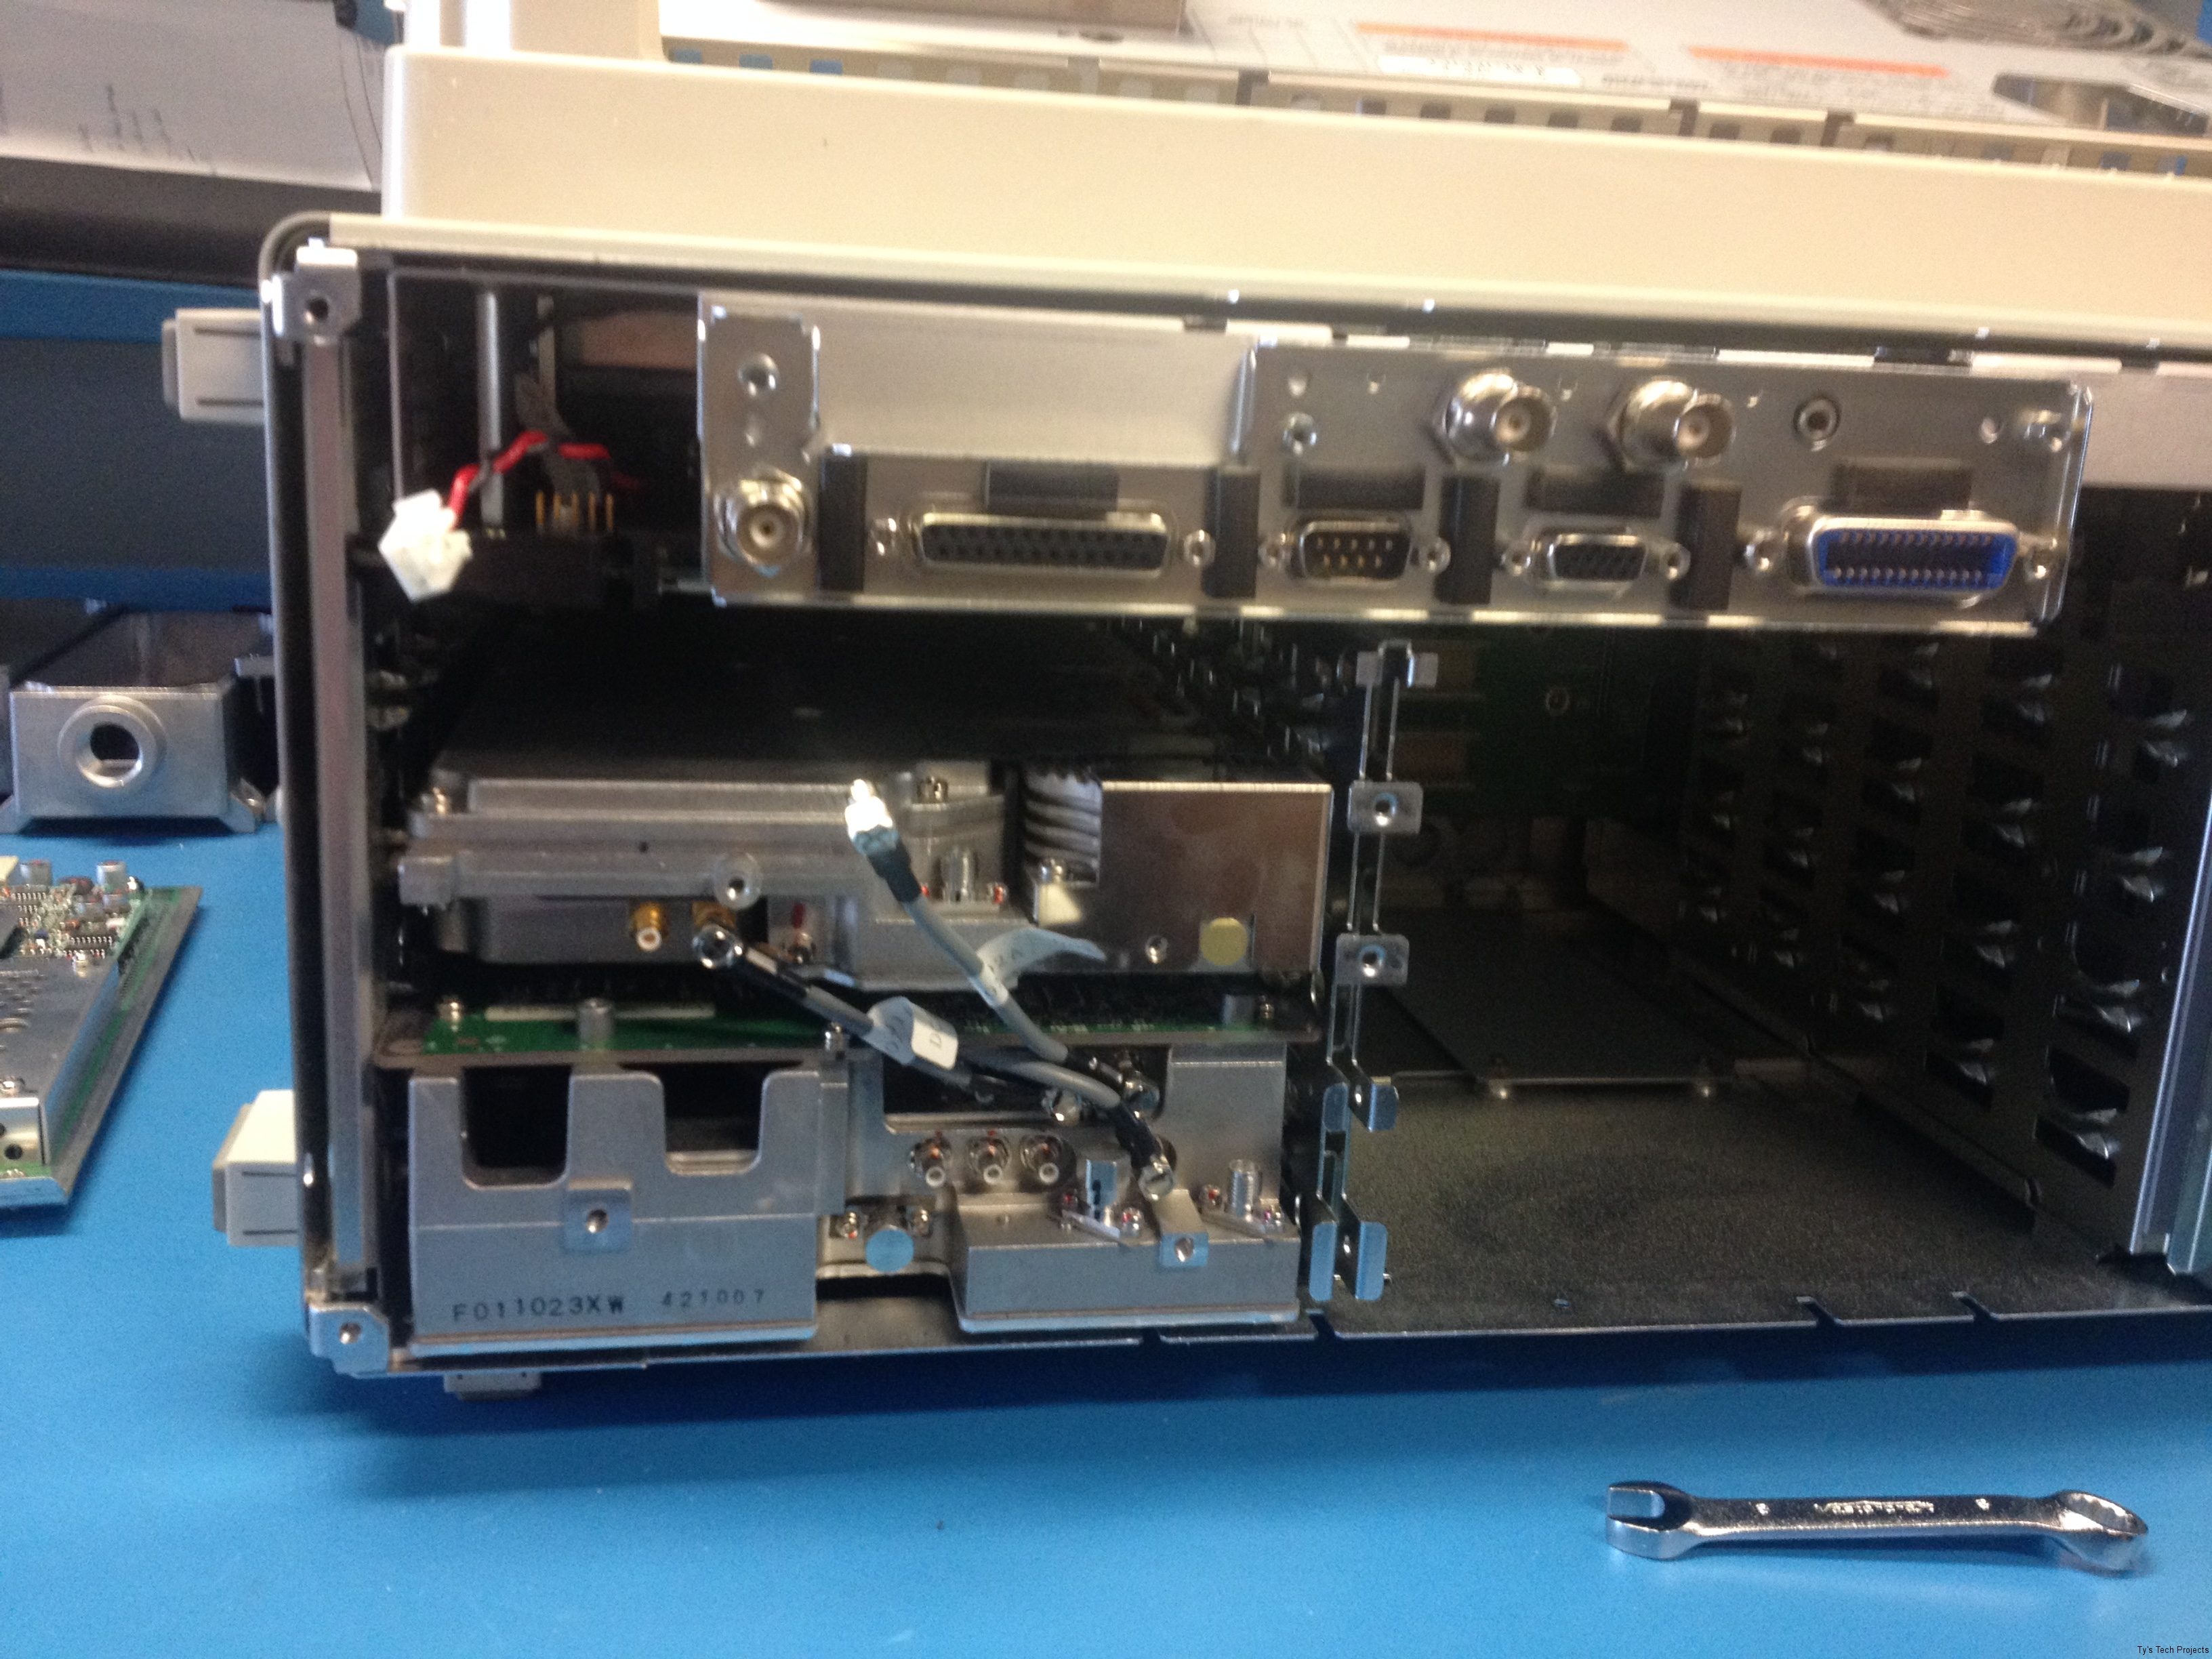 Back of chassis with ADC board removed